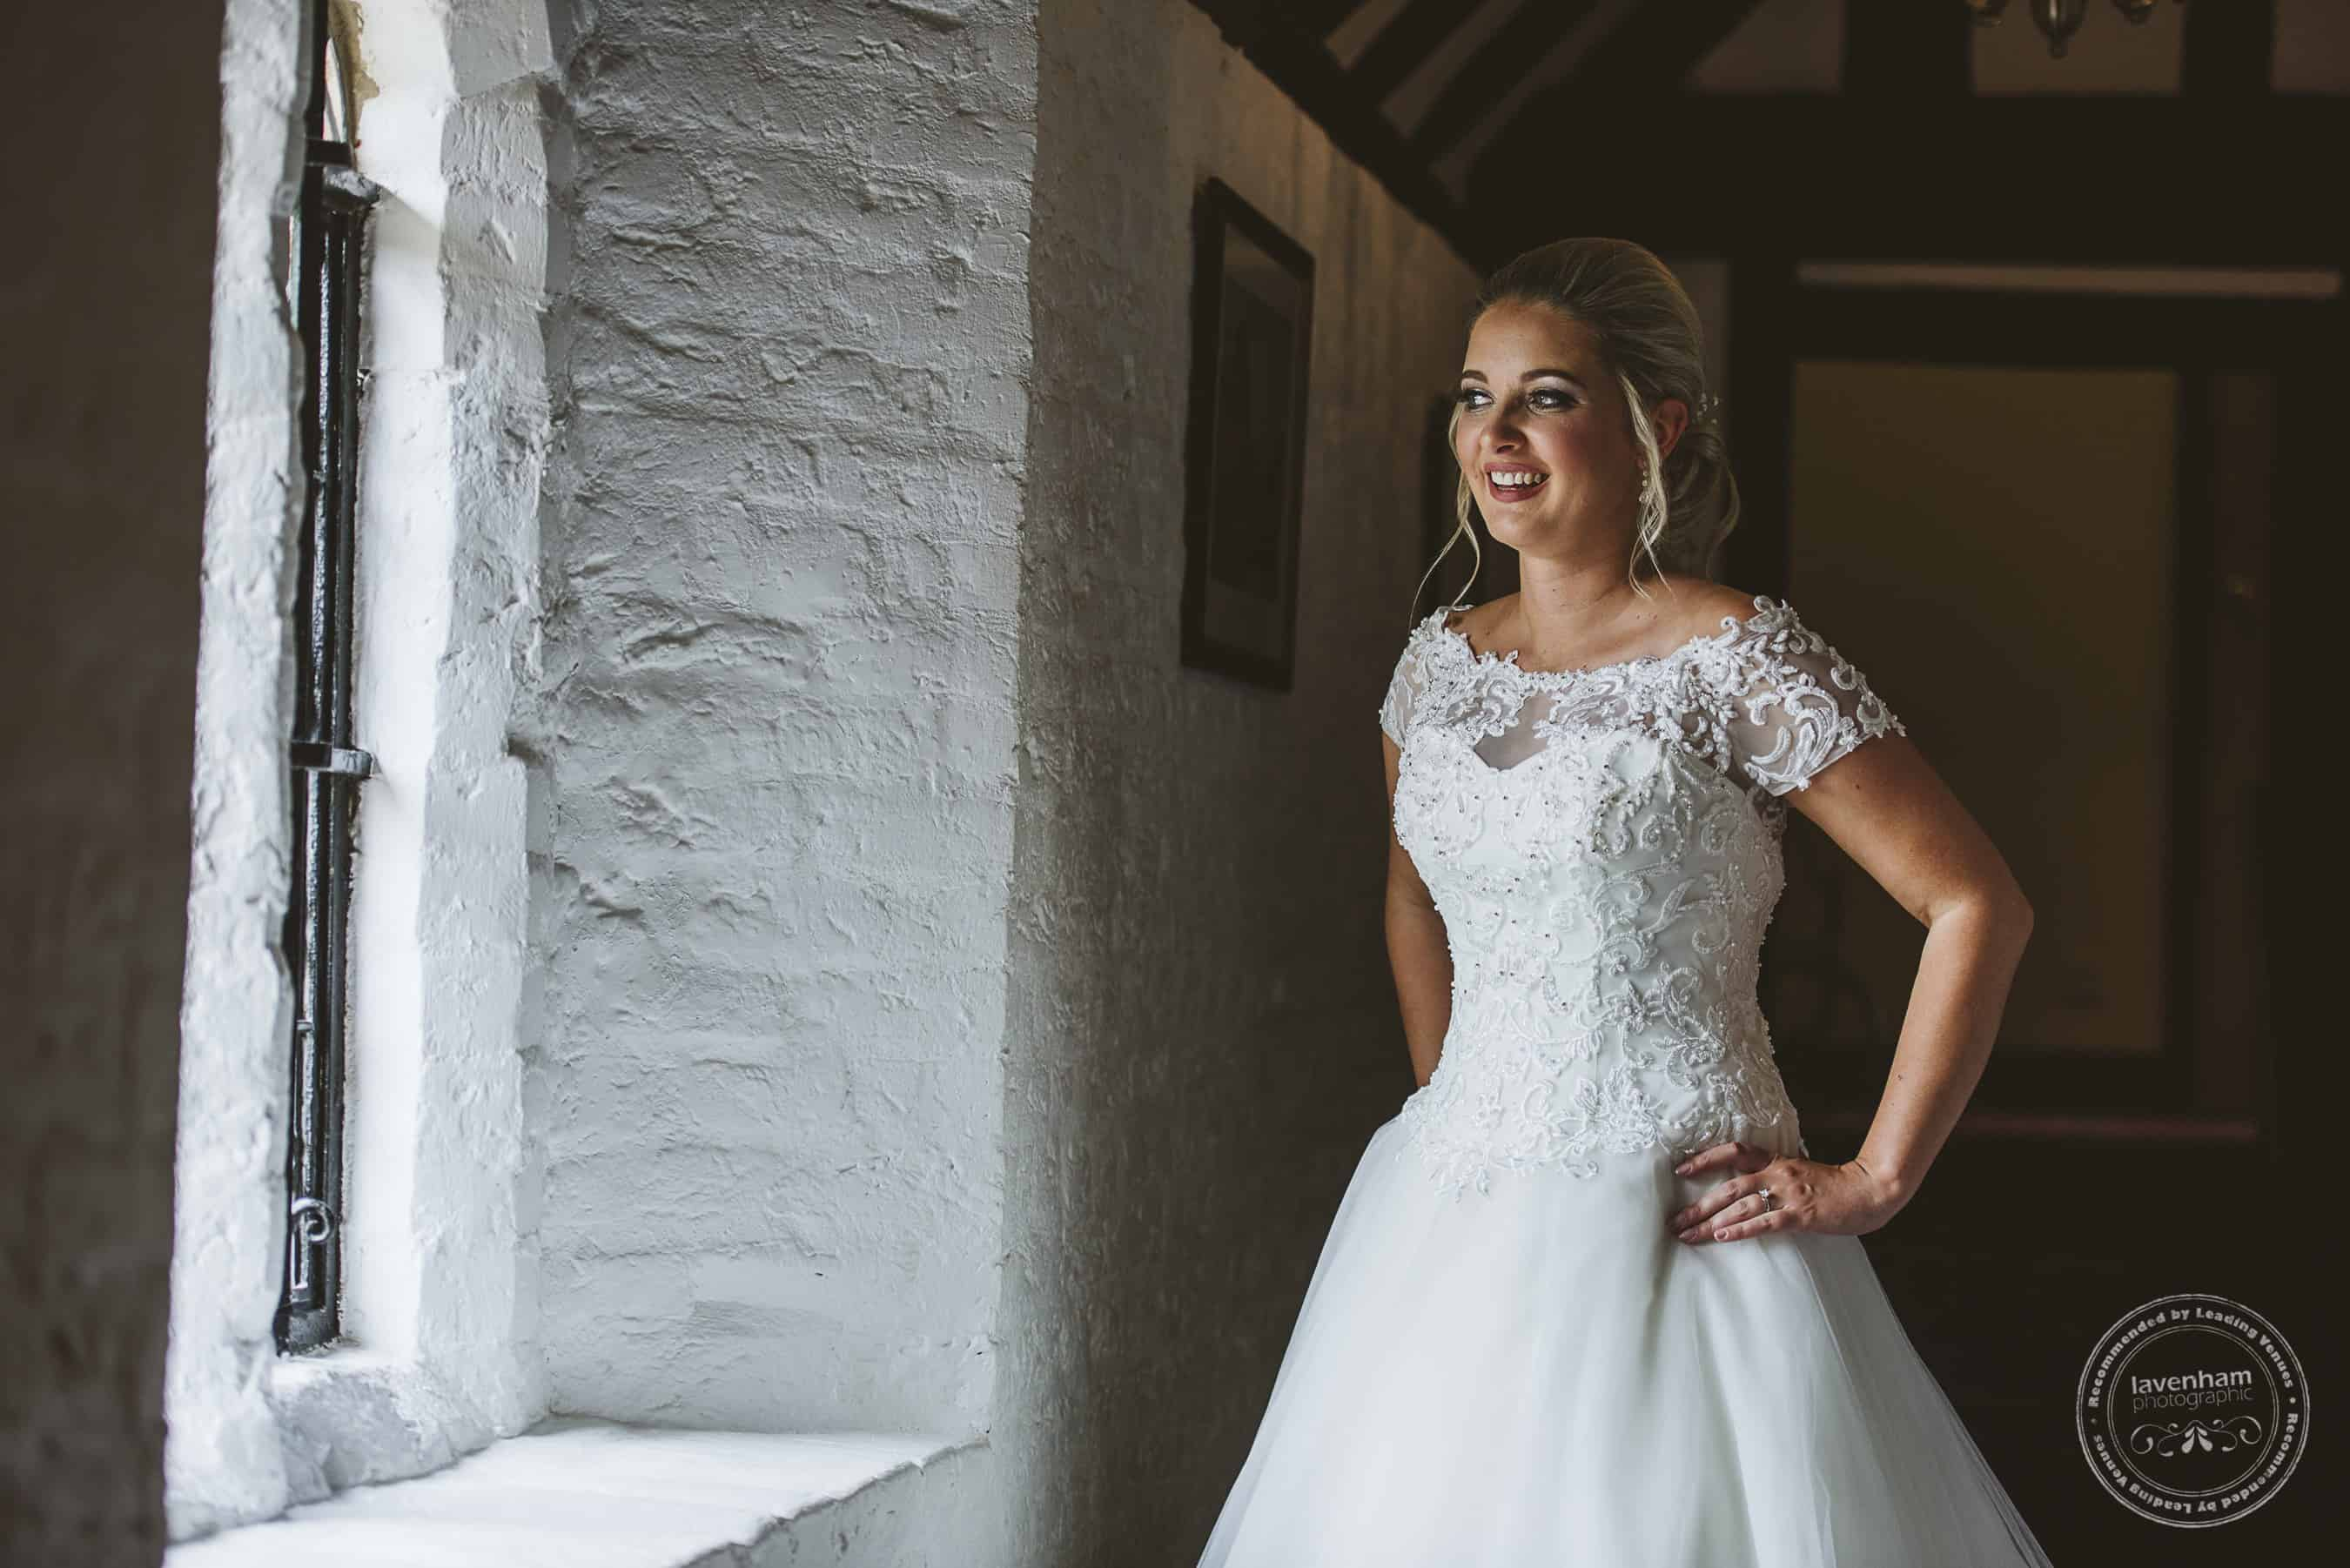 030618 Leez Priory Wedding Photography Lavenham Photographic 019